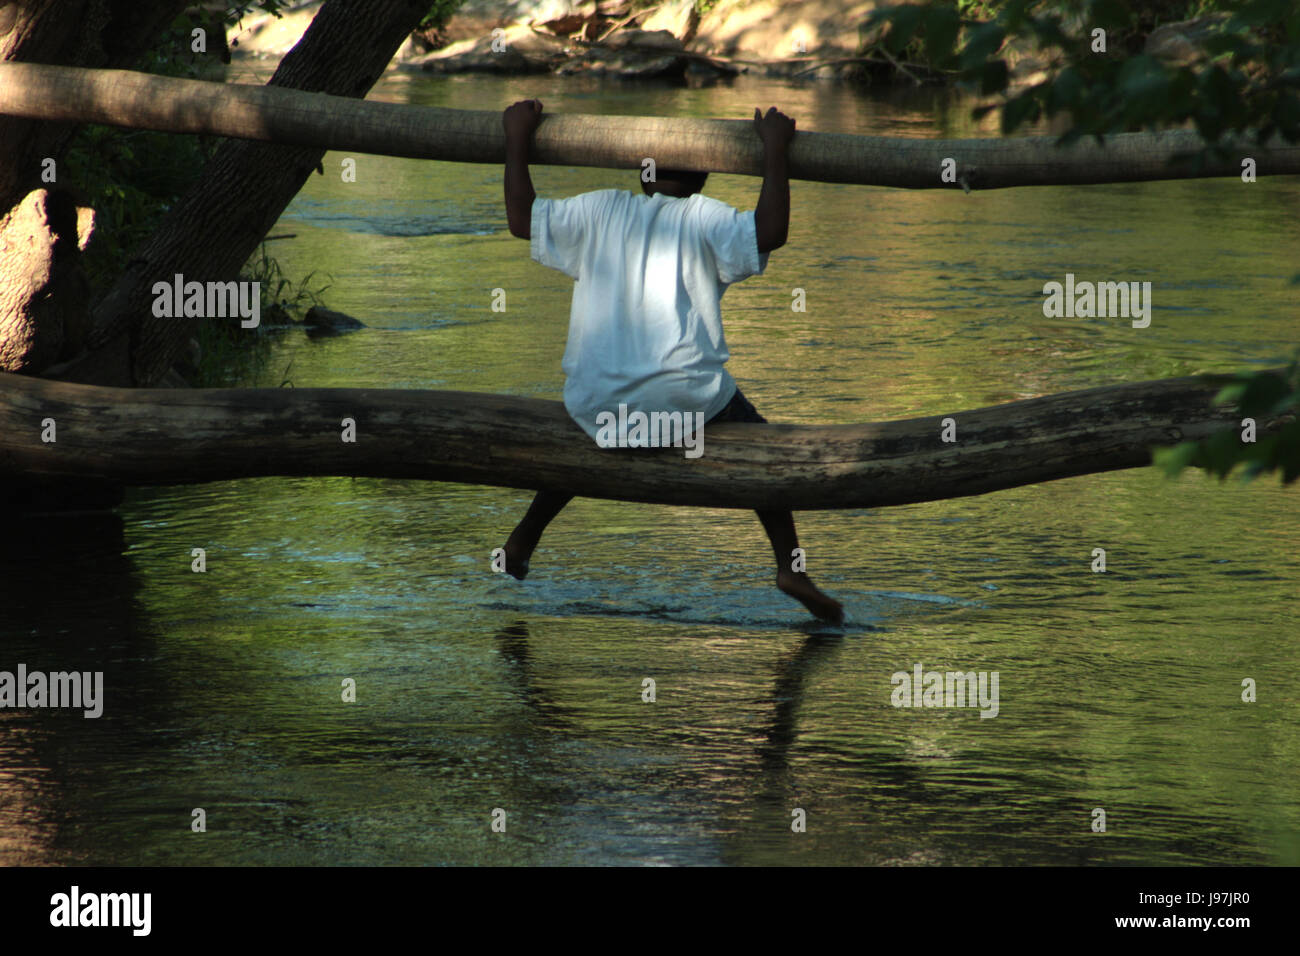 Boy alone sitting on fallen tree trunk over water - Stock Image